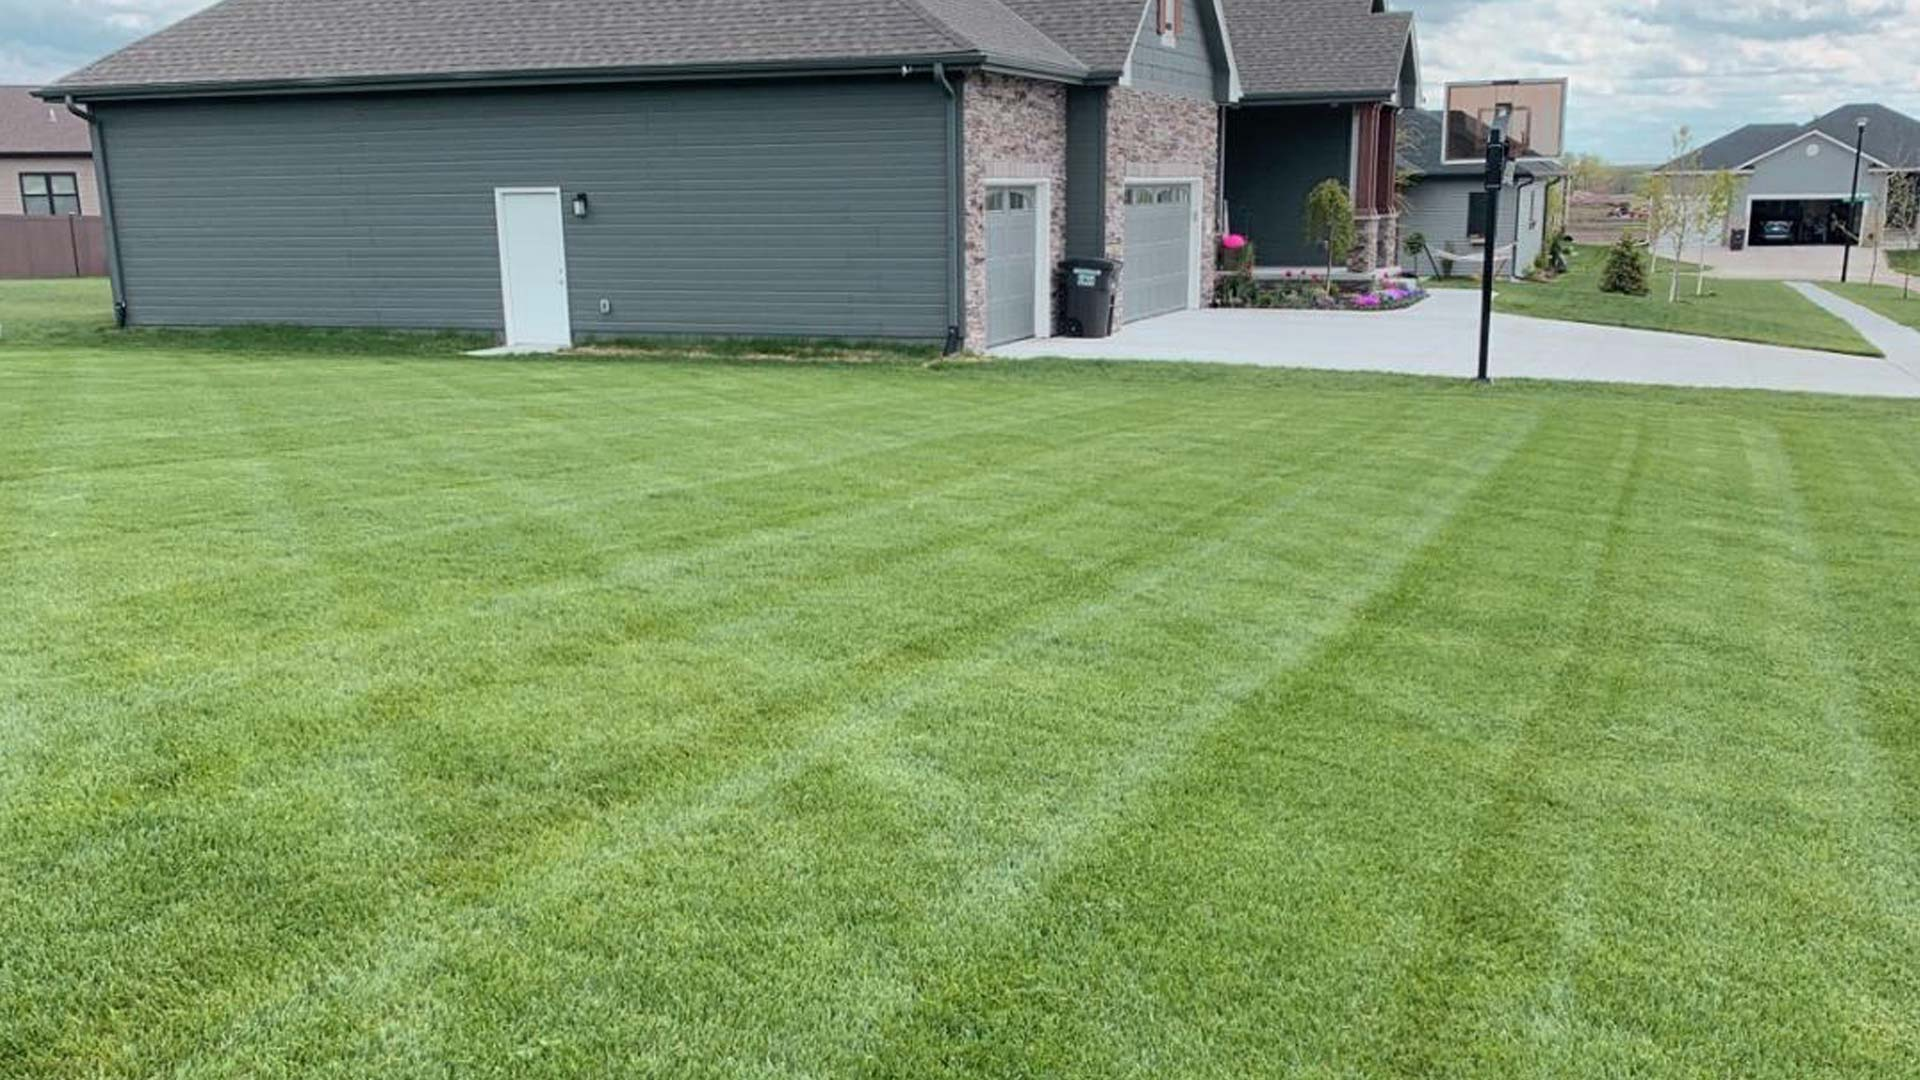 Recently mowed and treated lawn at a home in Lancaster.